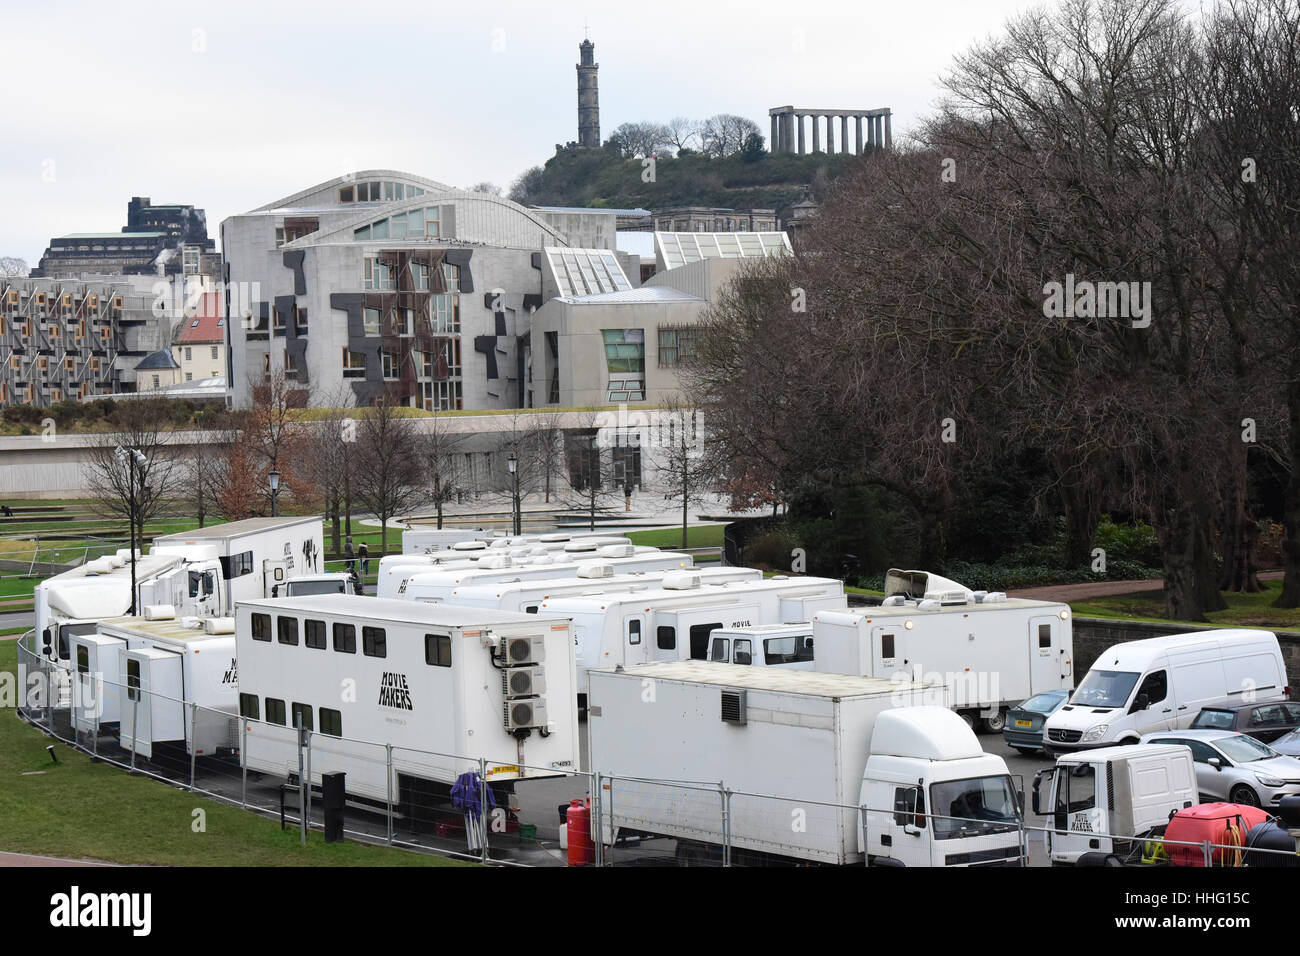 Edinburgh, Scotland, UK. 19th Jan, 2017.  Film location support vehicles and services for the 'Outlander' - Stock Image